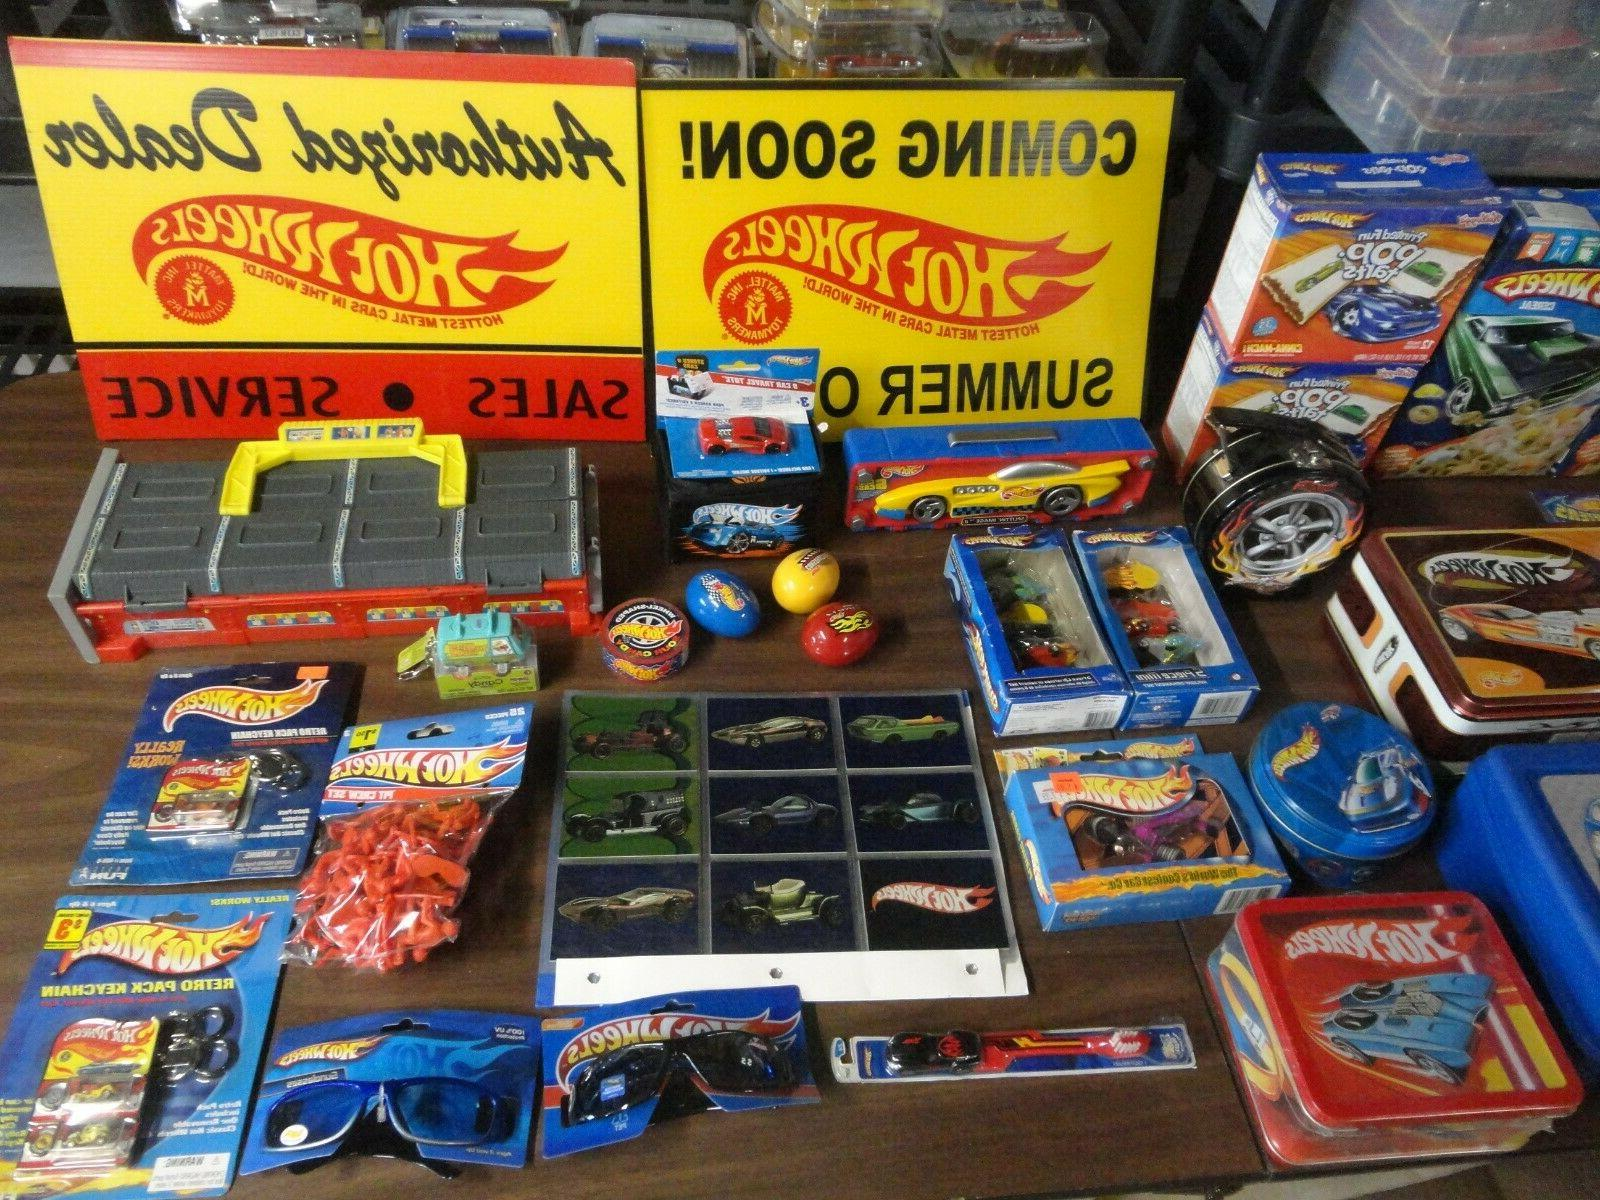 accessories lot of over 300 items read